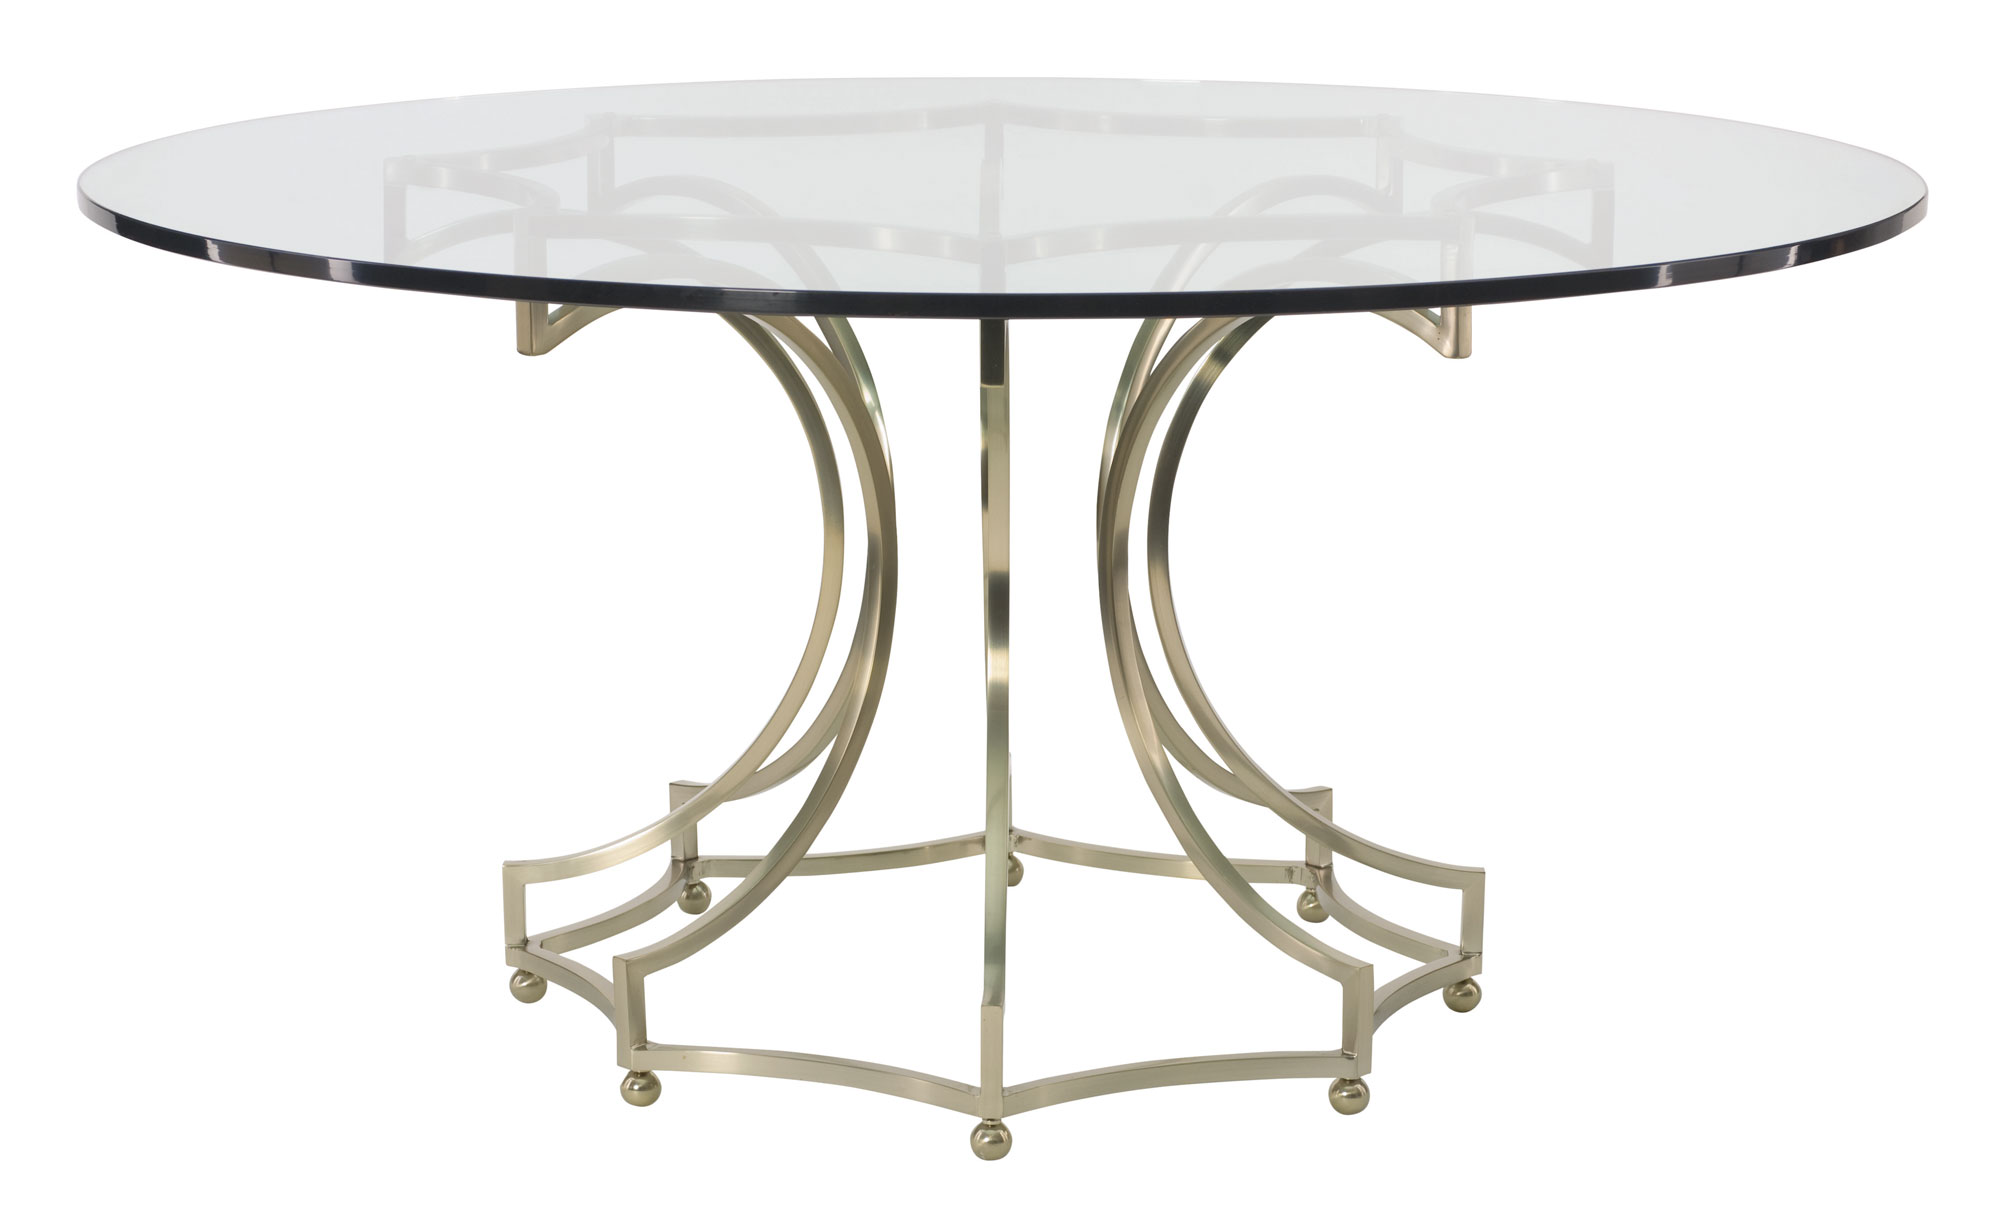 round dining table glass top with metal base glass top kitchen table Miramont Round Dining Table Glass Top with Metal Base